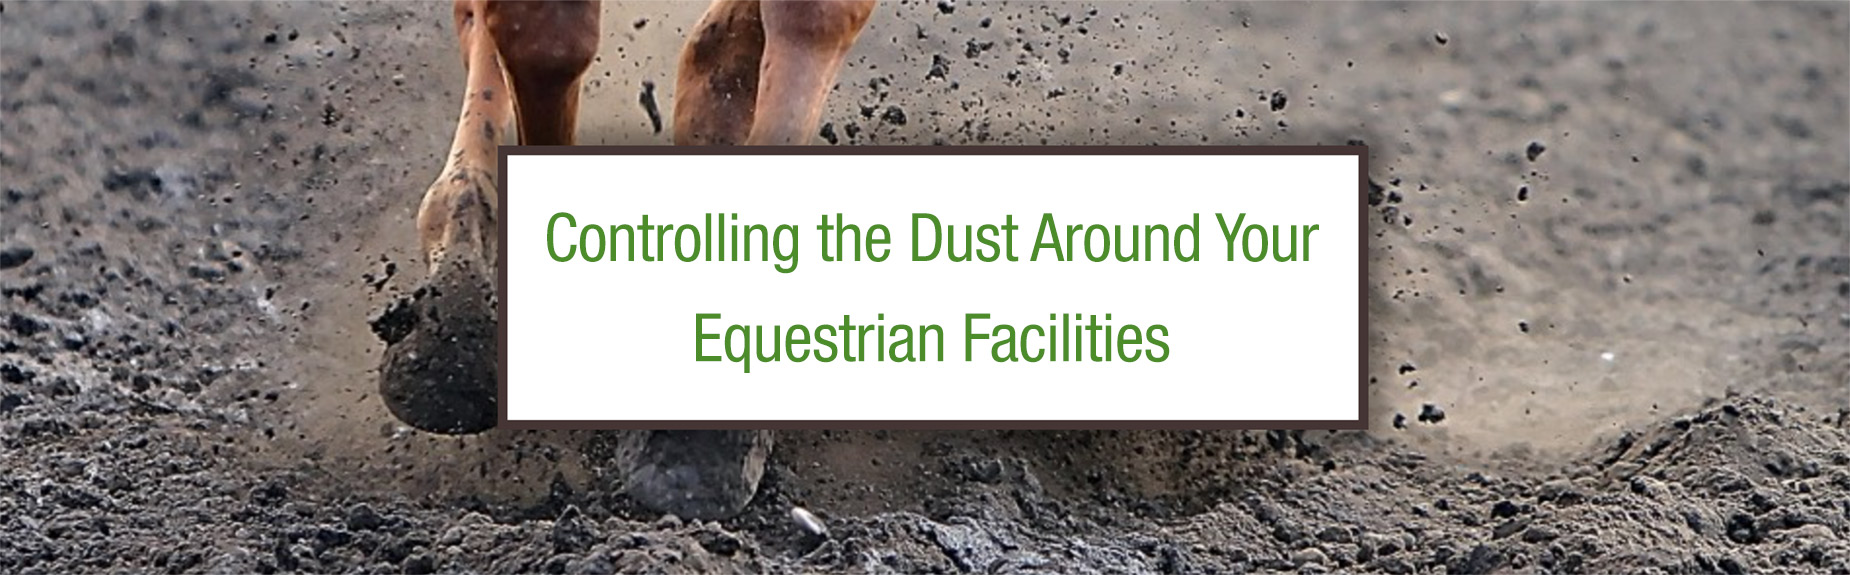 dust control for equestrian facilities